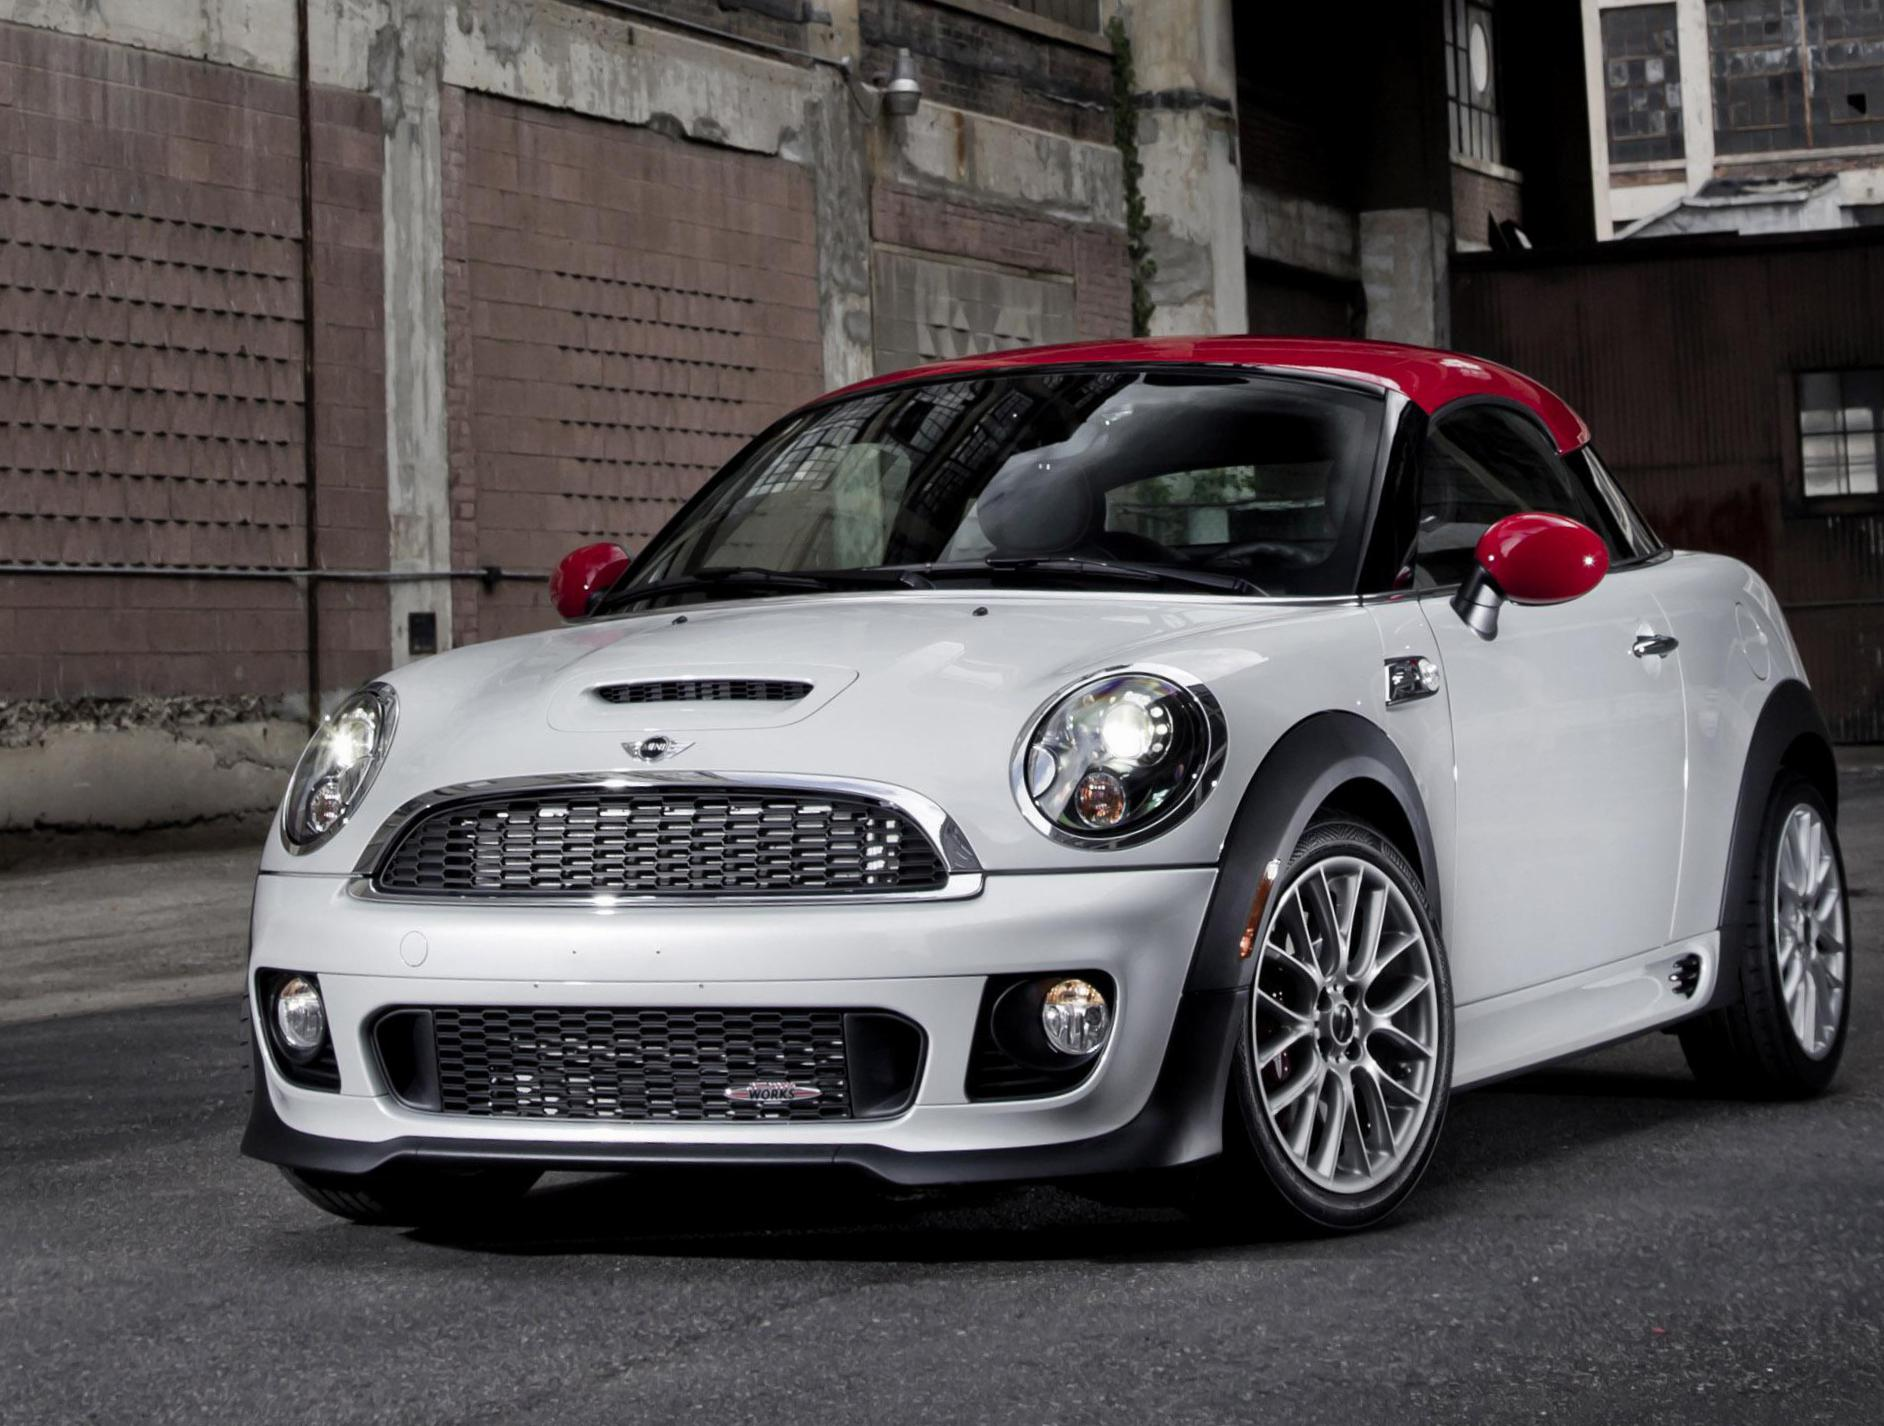 mini cooper coupe photos and specs photo mini cooper coupe for sale and 26 perfect photos of. Black Bedroom Furniture Sets. Home Design Ideas